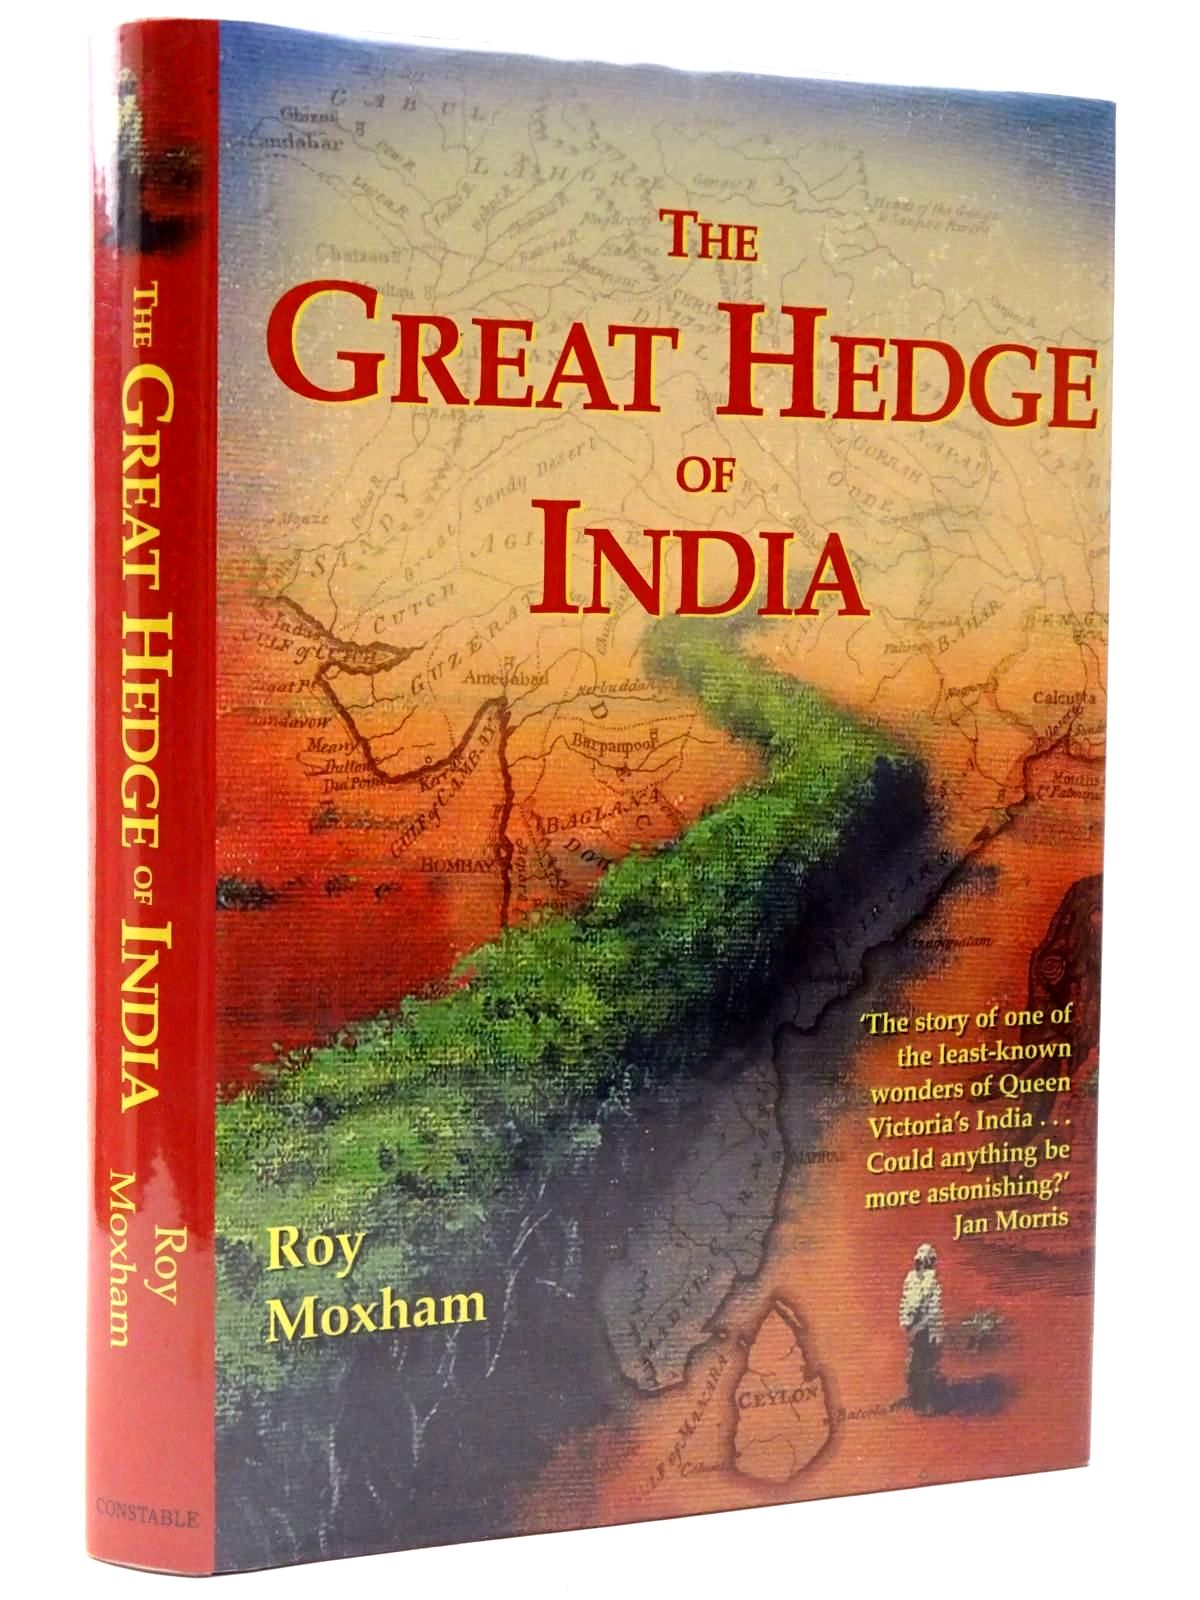 Photo of THE GREAT HEDGE OF INDIA written by Moxham, Roy published by Constable (STOCK CODE: 2129985)  for sale by Stella & Rose's Books